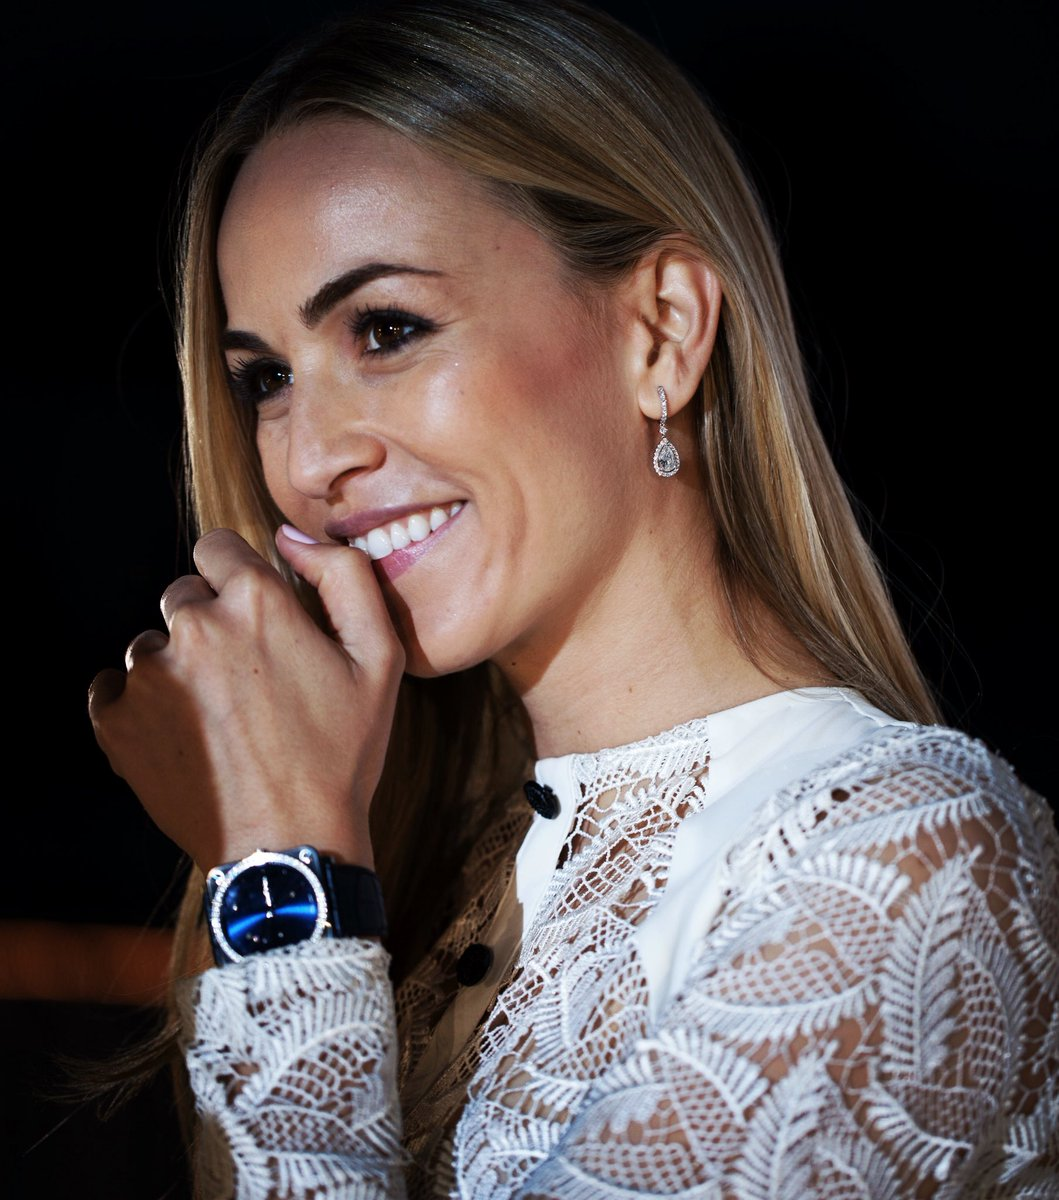 Proud to introduce @CarmenJorda as our ambassador -BR S Diamond Eagle #bellross  #monacogp  #renaultf1 #AmberLounge https://t.co/MIVGFqYpMl